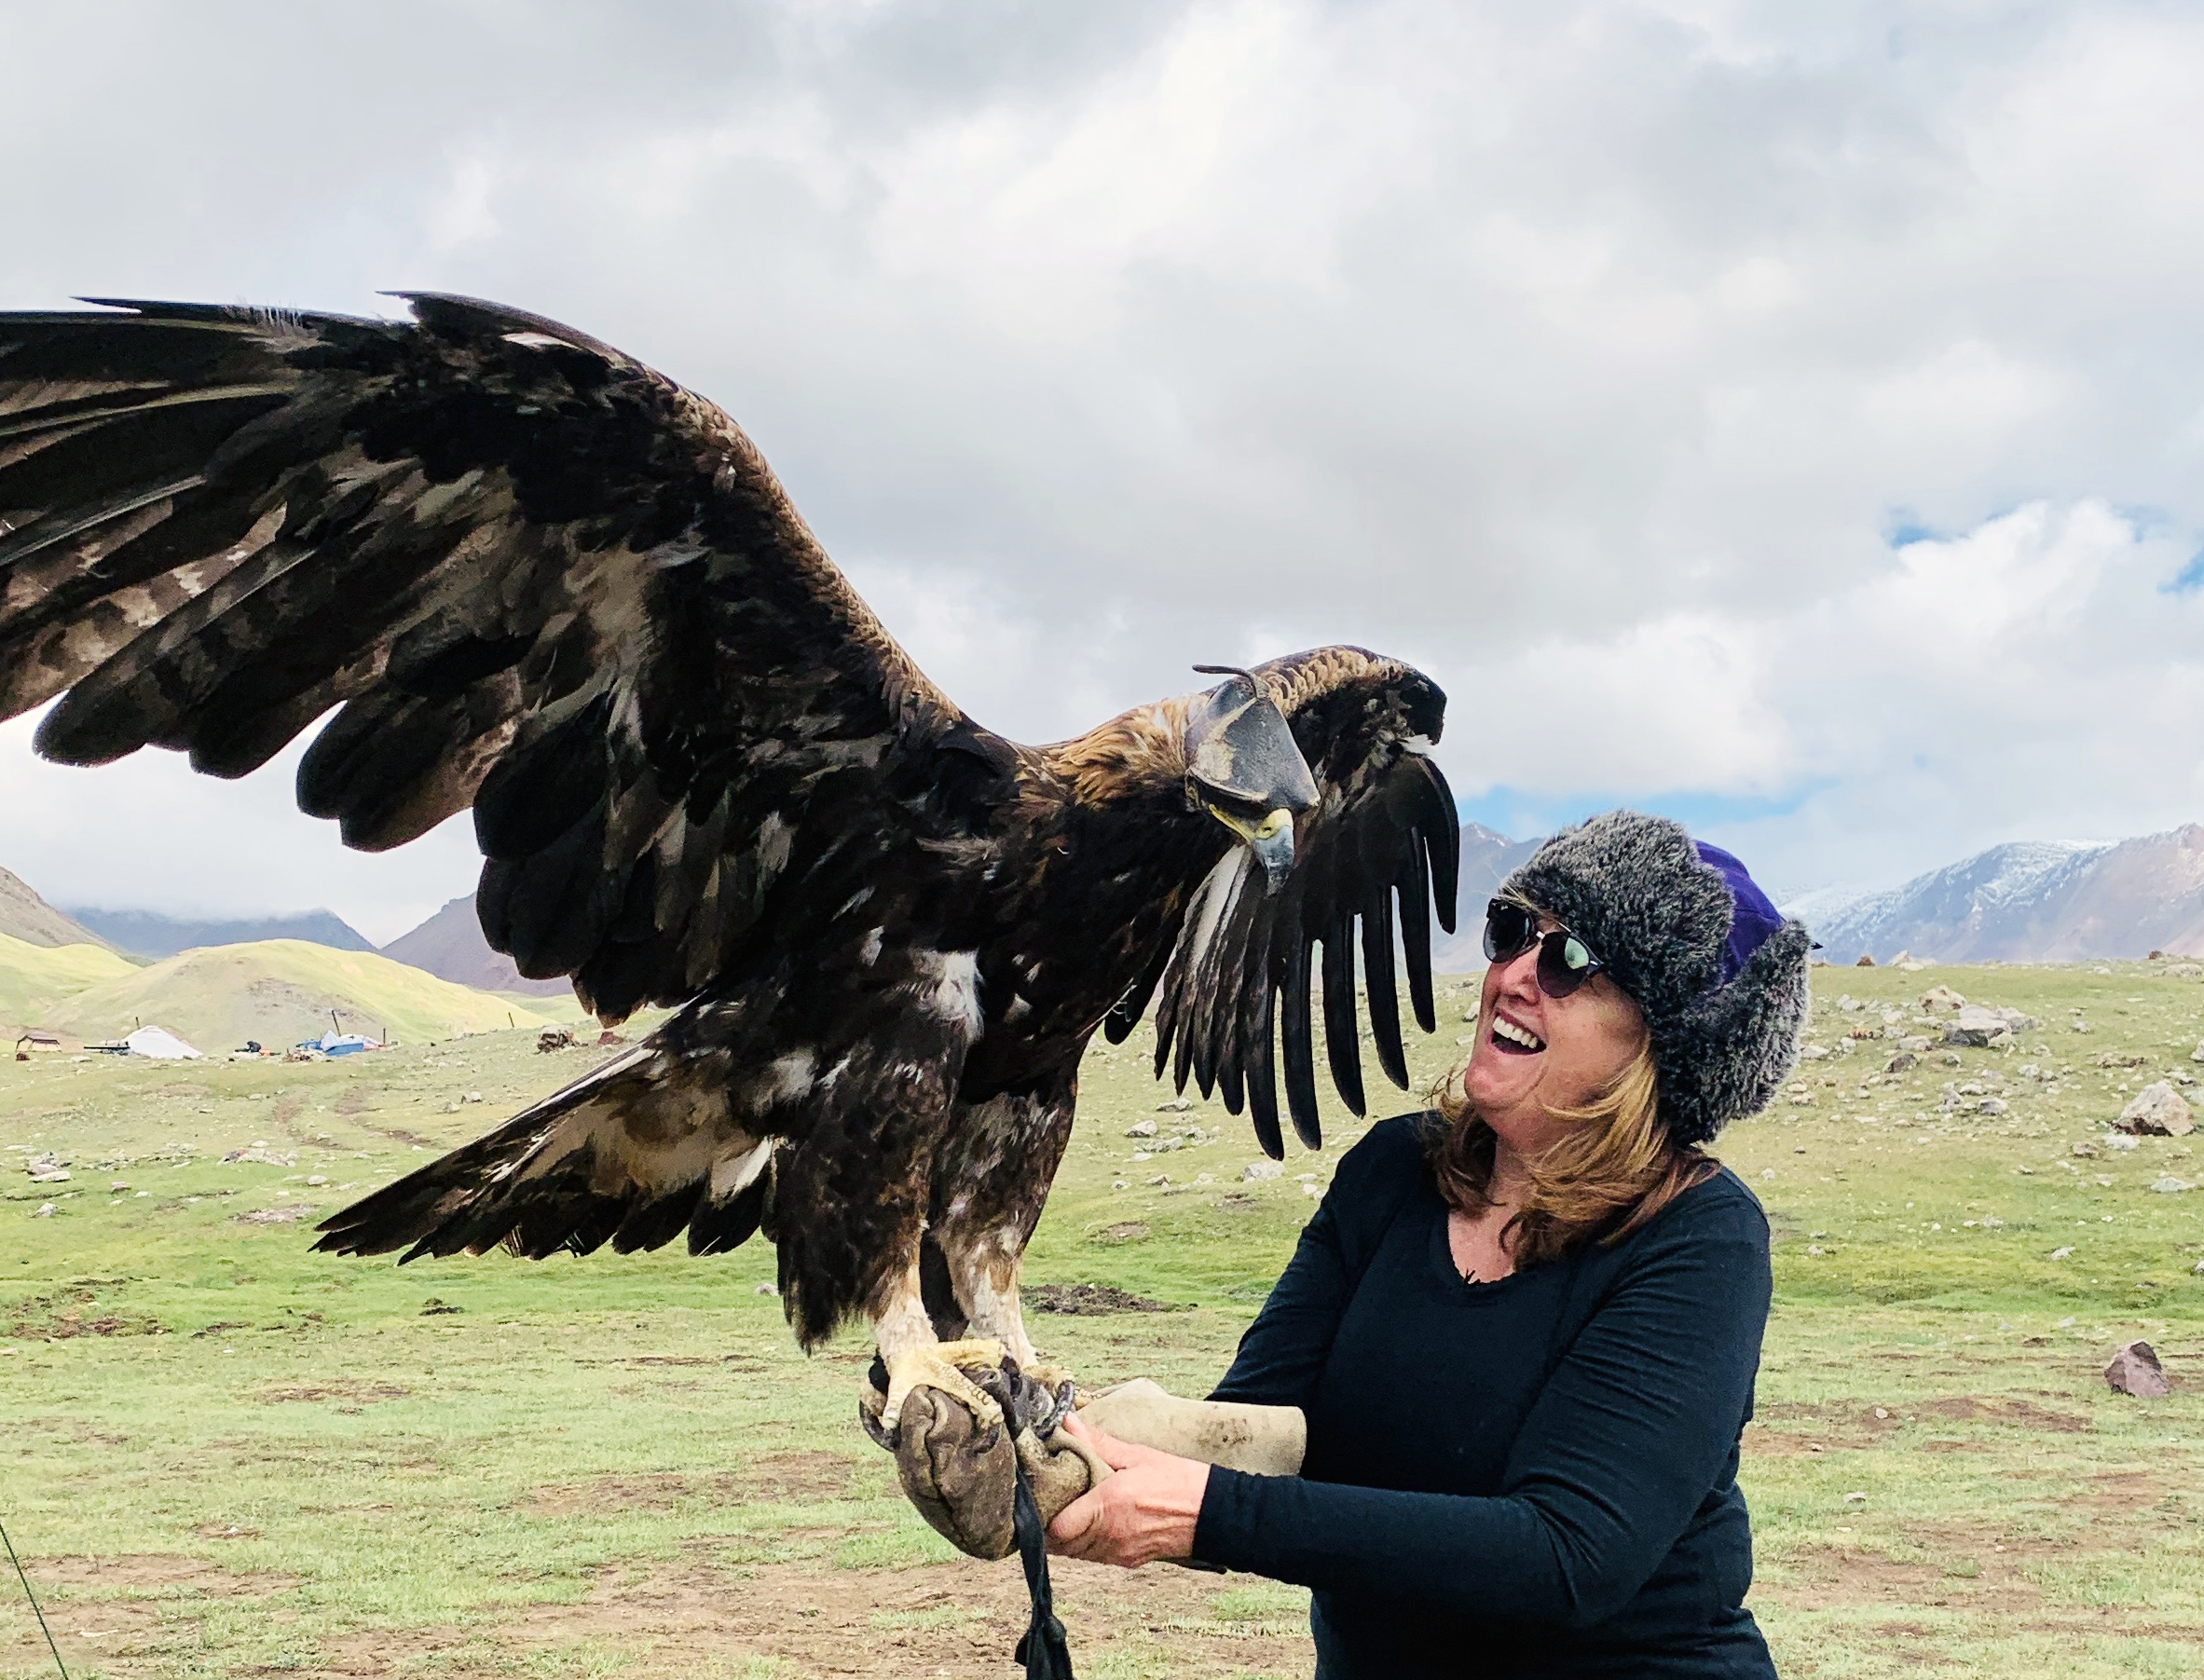 Golden Eagle, Linda, Altai Tavan Bogd National Park